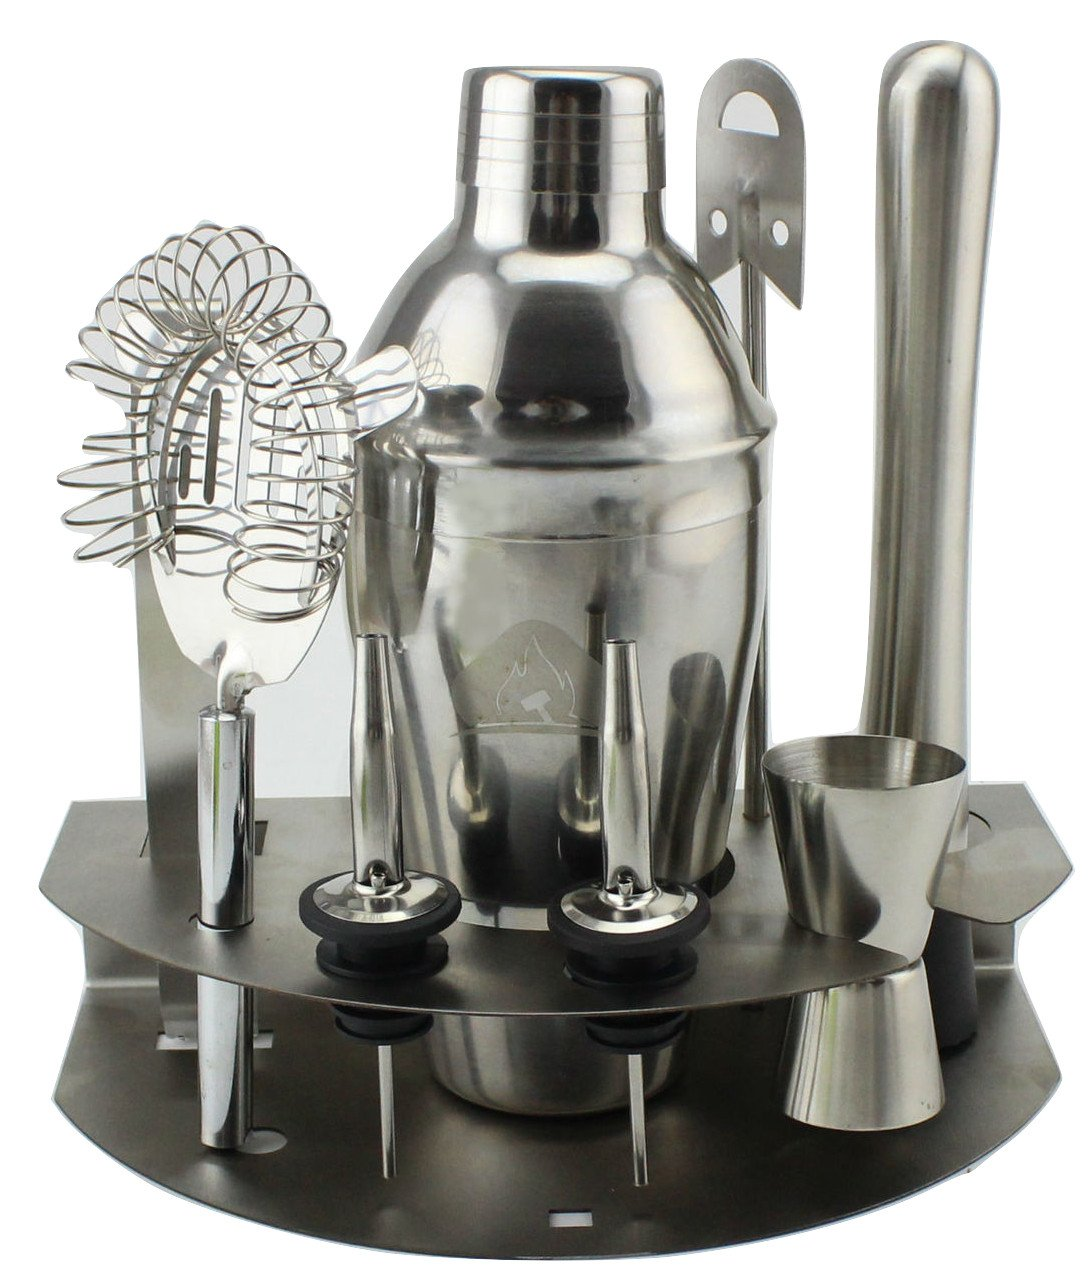 Stainless Steel Cocktail set Mixology kit with Shaker Jigger Muddler Strainer Mixing straw Ice tongs stand and 8 cocktail Recipies for the home kitchen of any Bartender or Mixologist